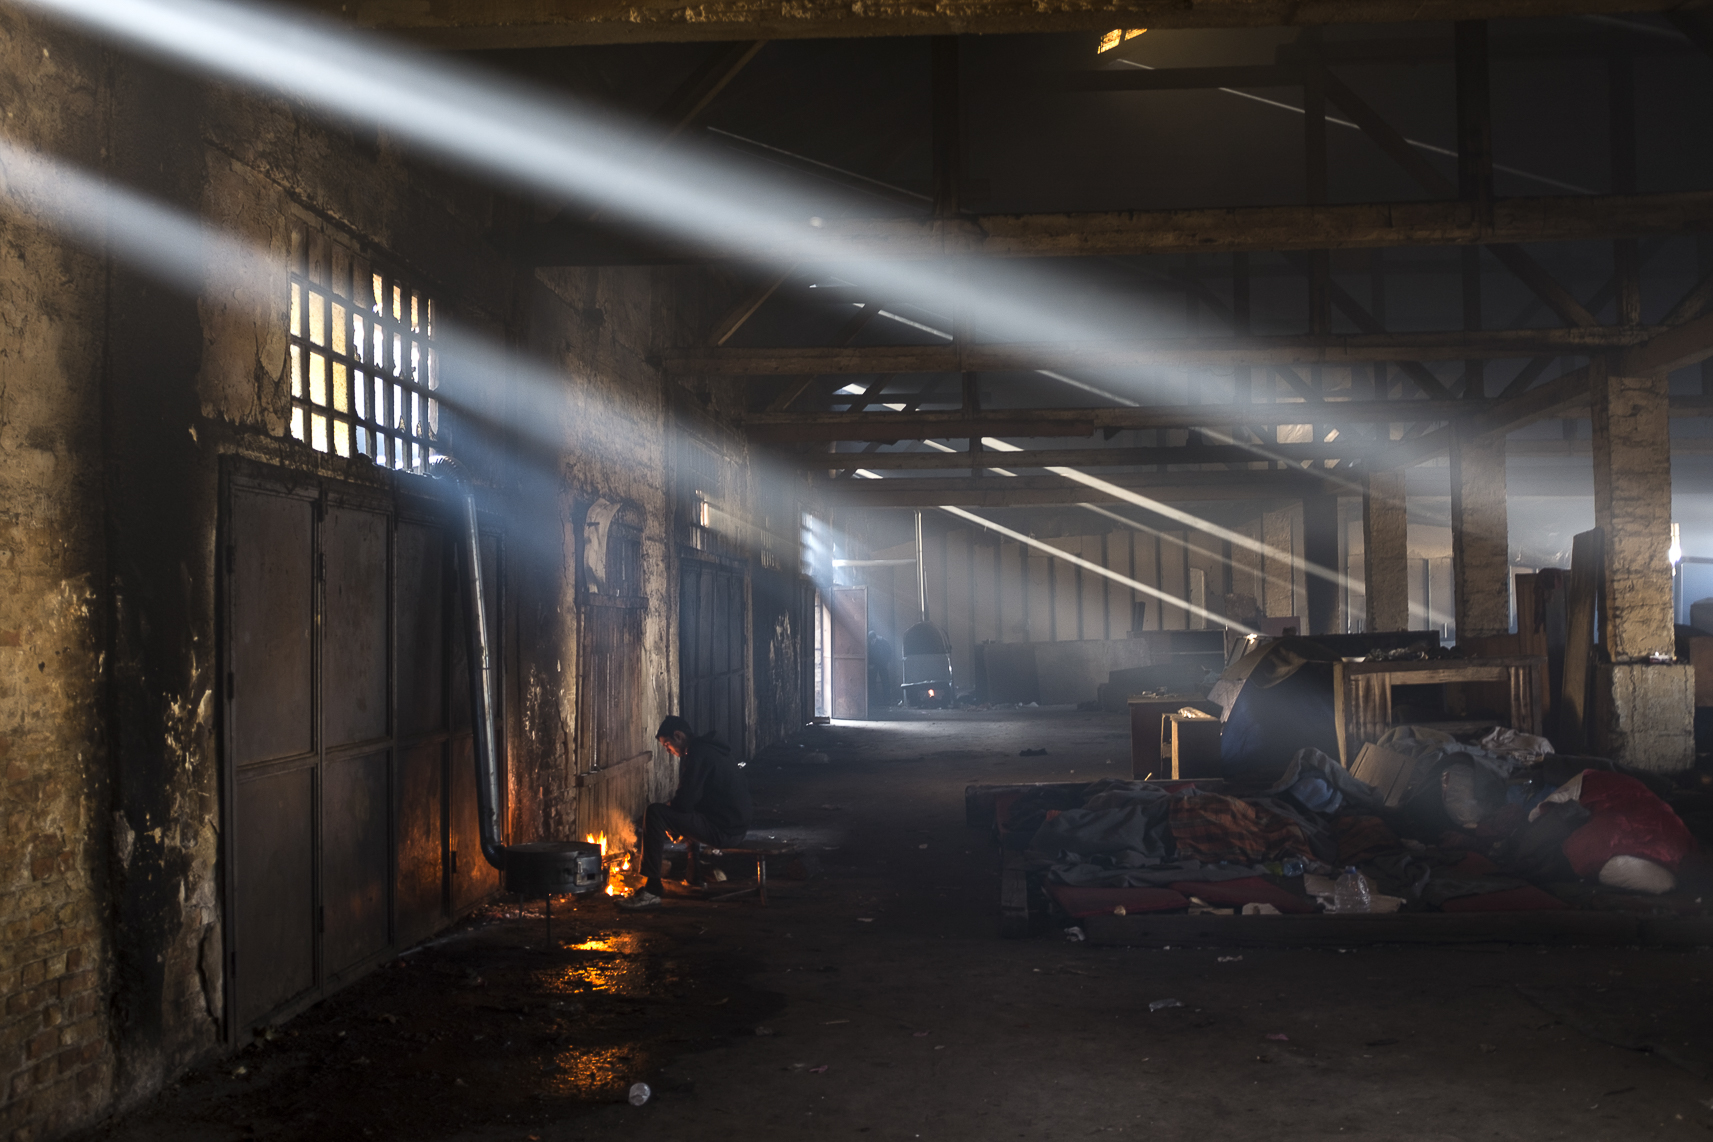 A migrant makes tea on a fire inside an abandoned warehouse where he and others took shelter in Belgrade, Serbia. February 12, 2107.